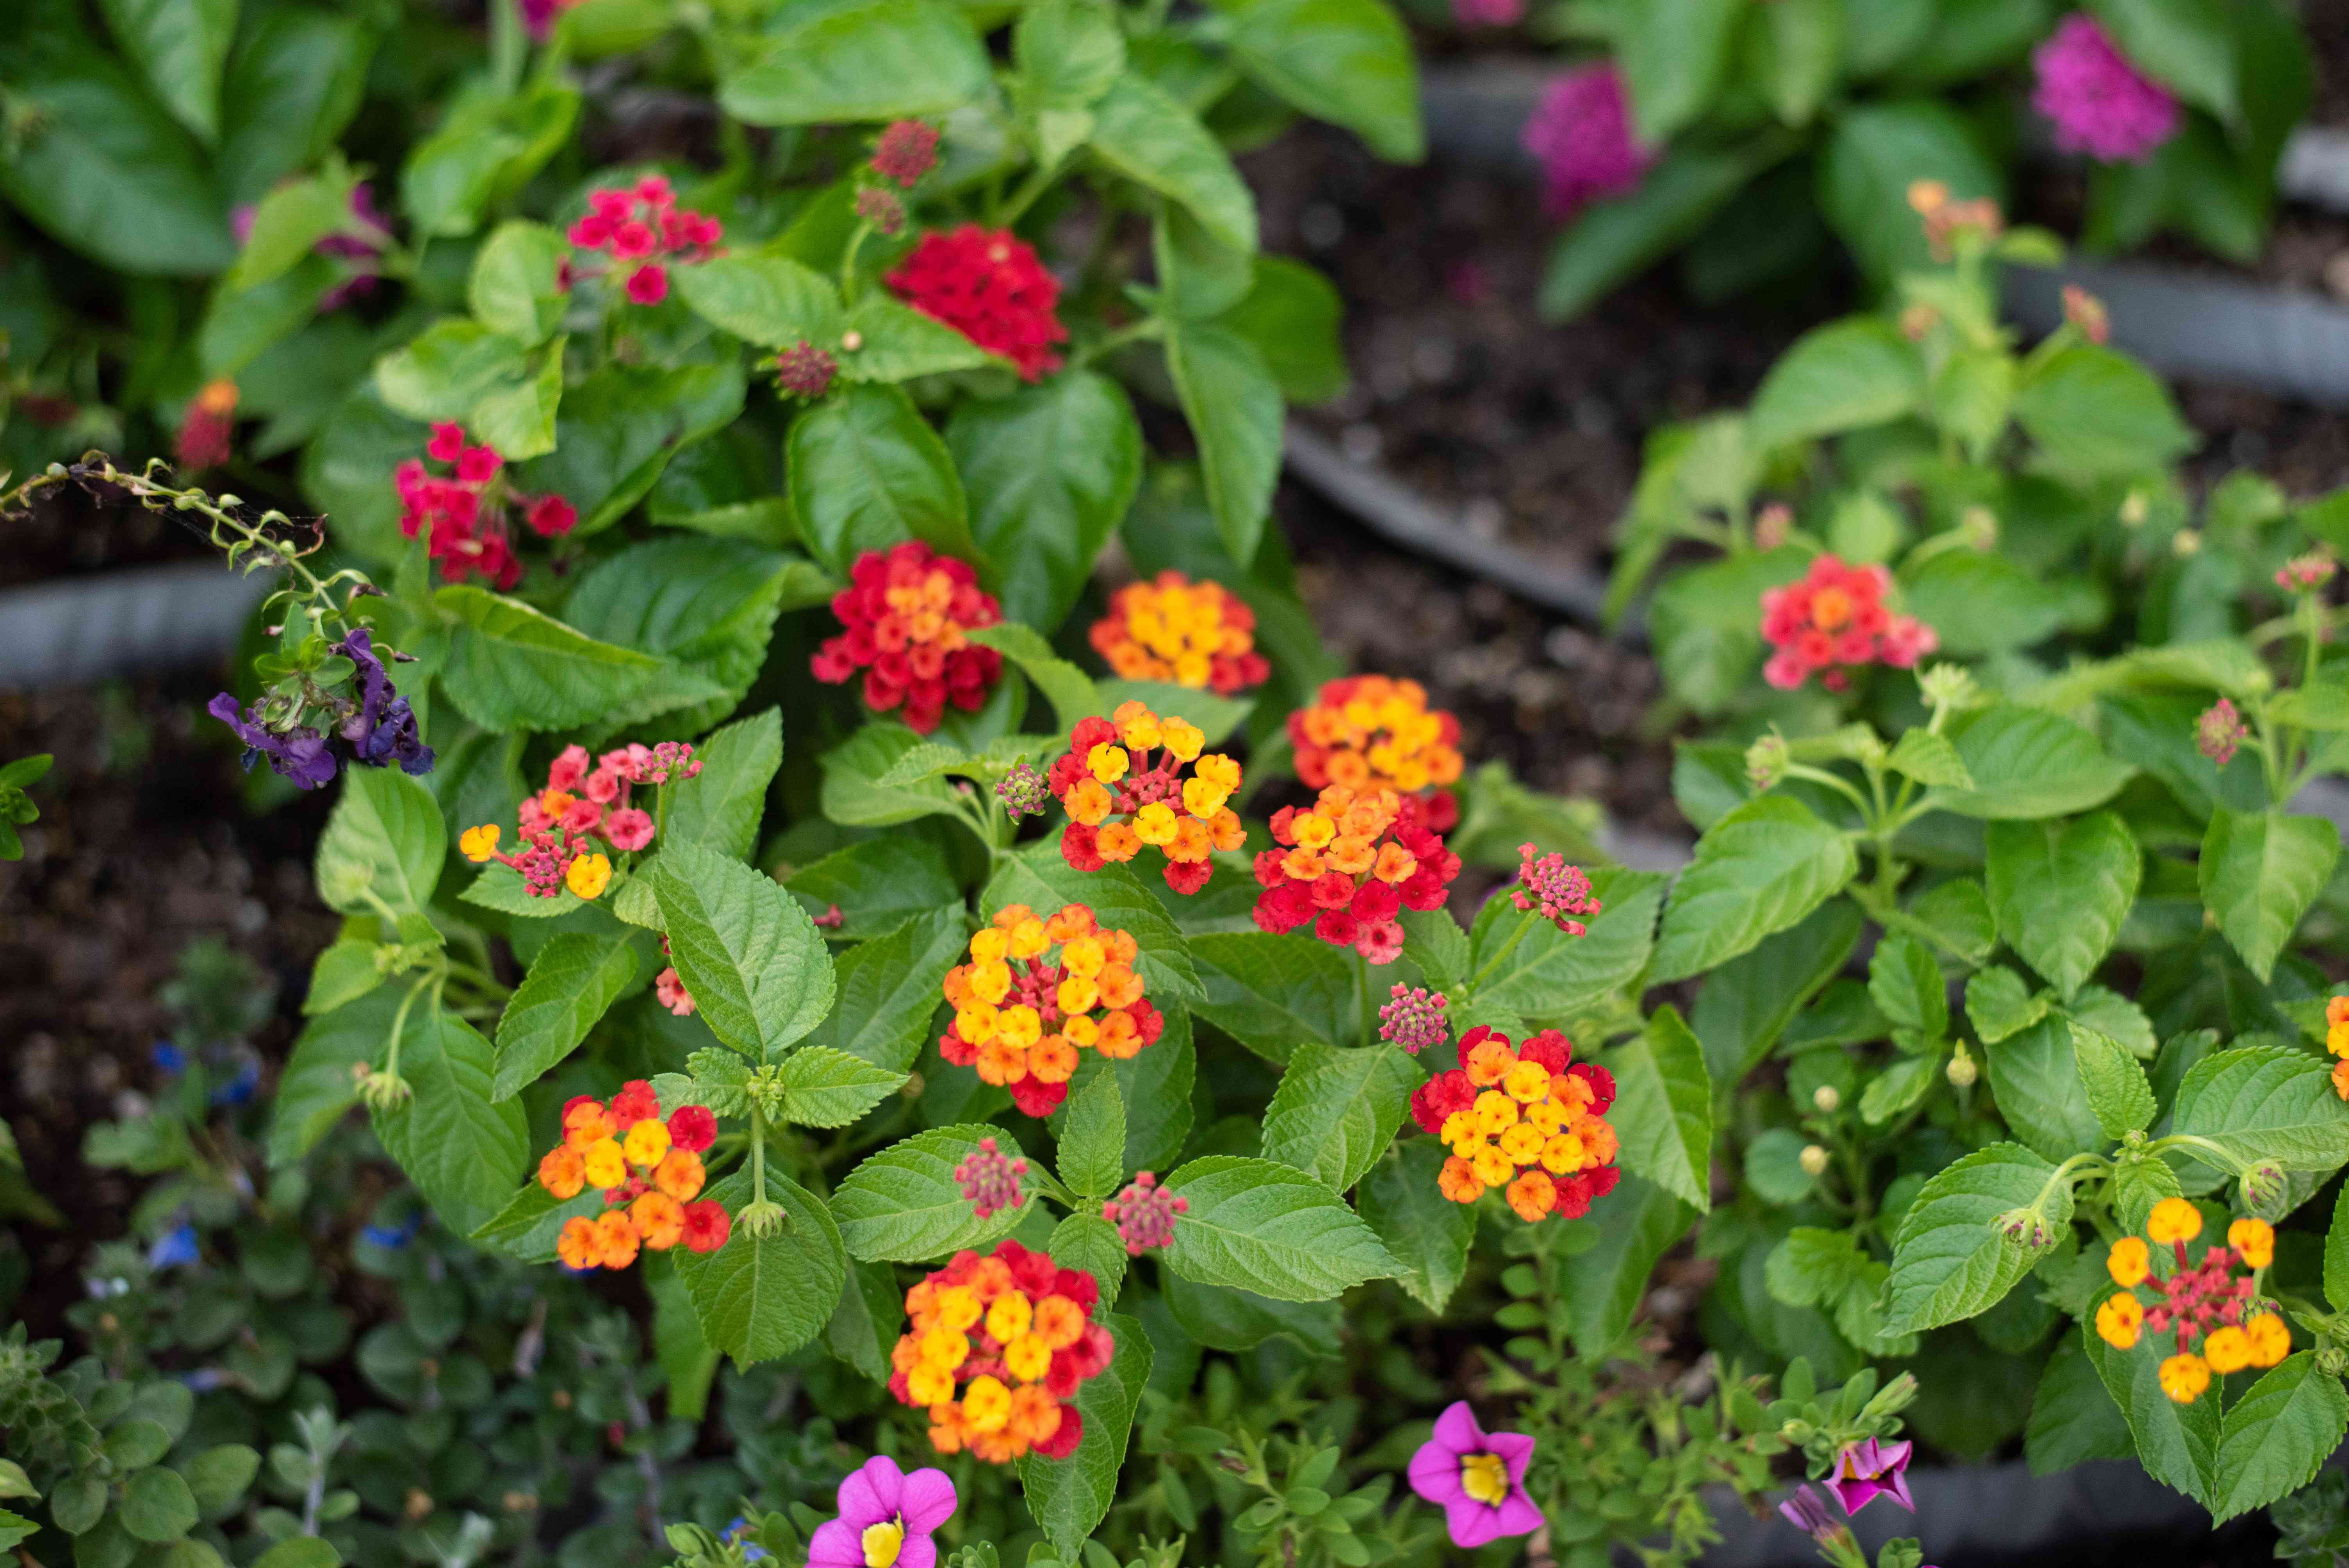 Bloodflower plant with small green leaves and tiny clusters of yellow, orange, and red flowers